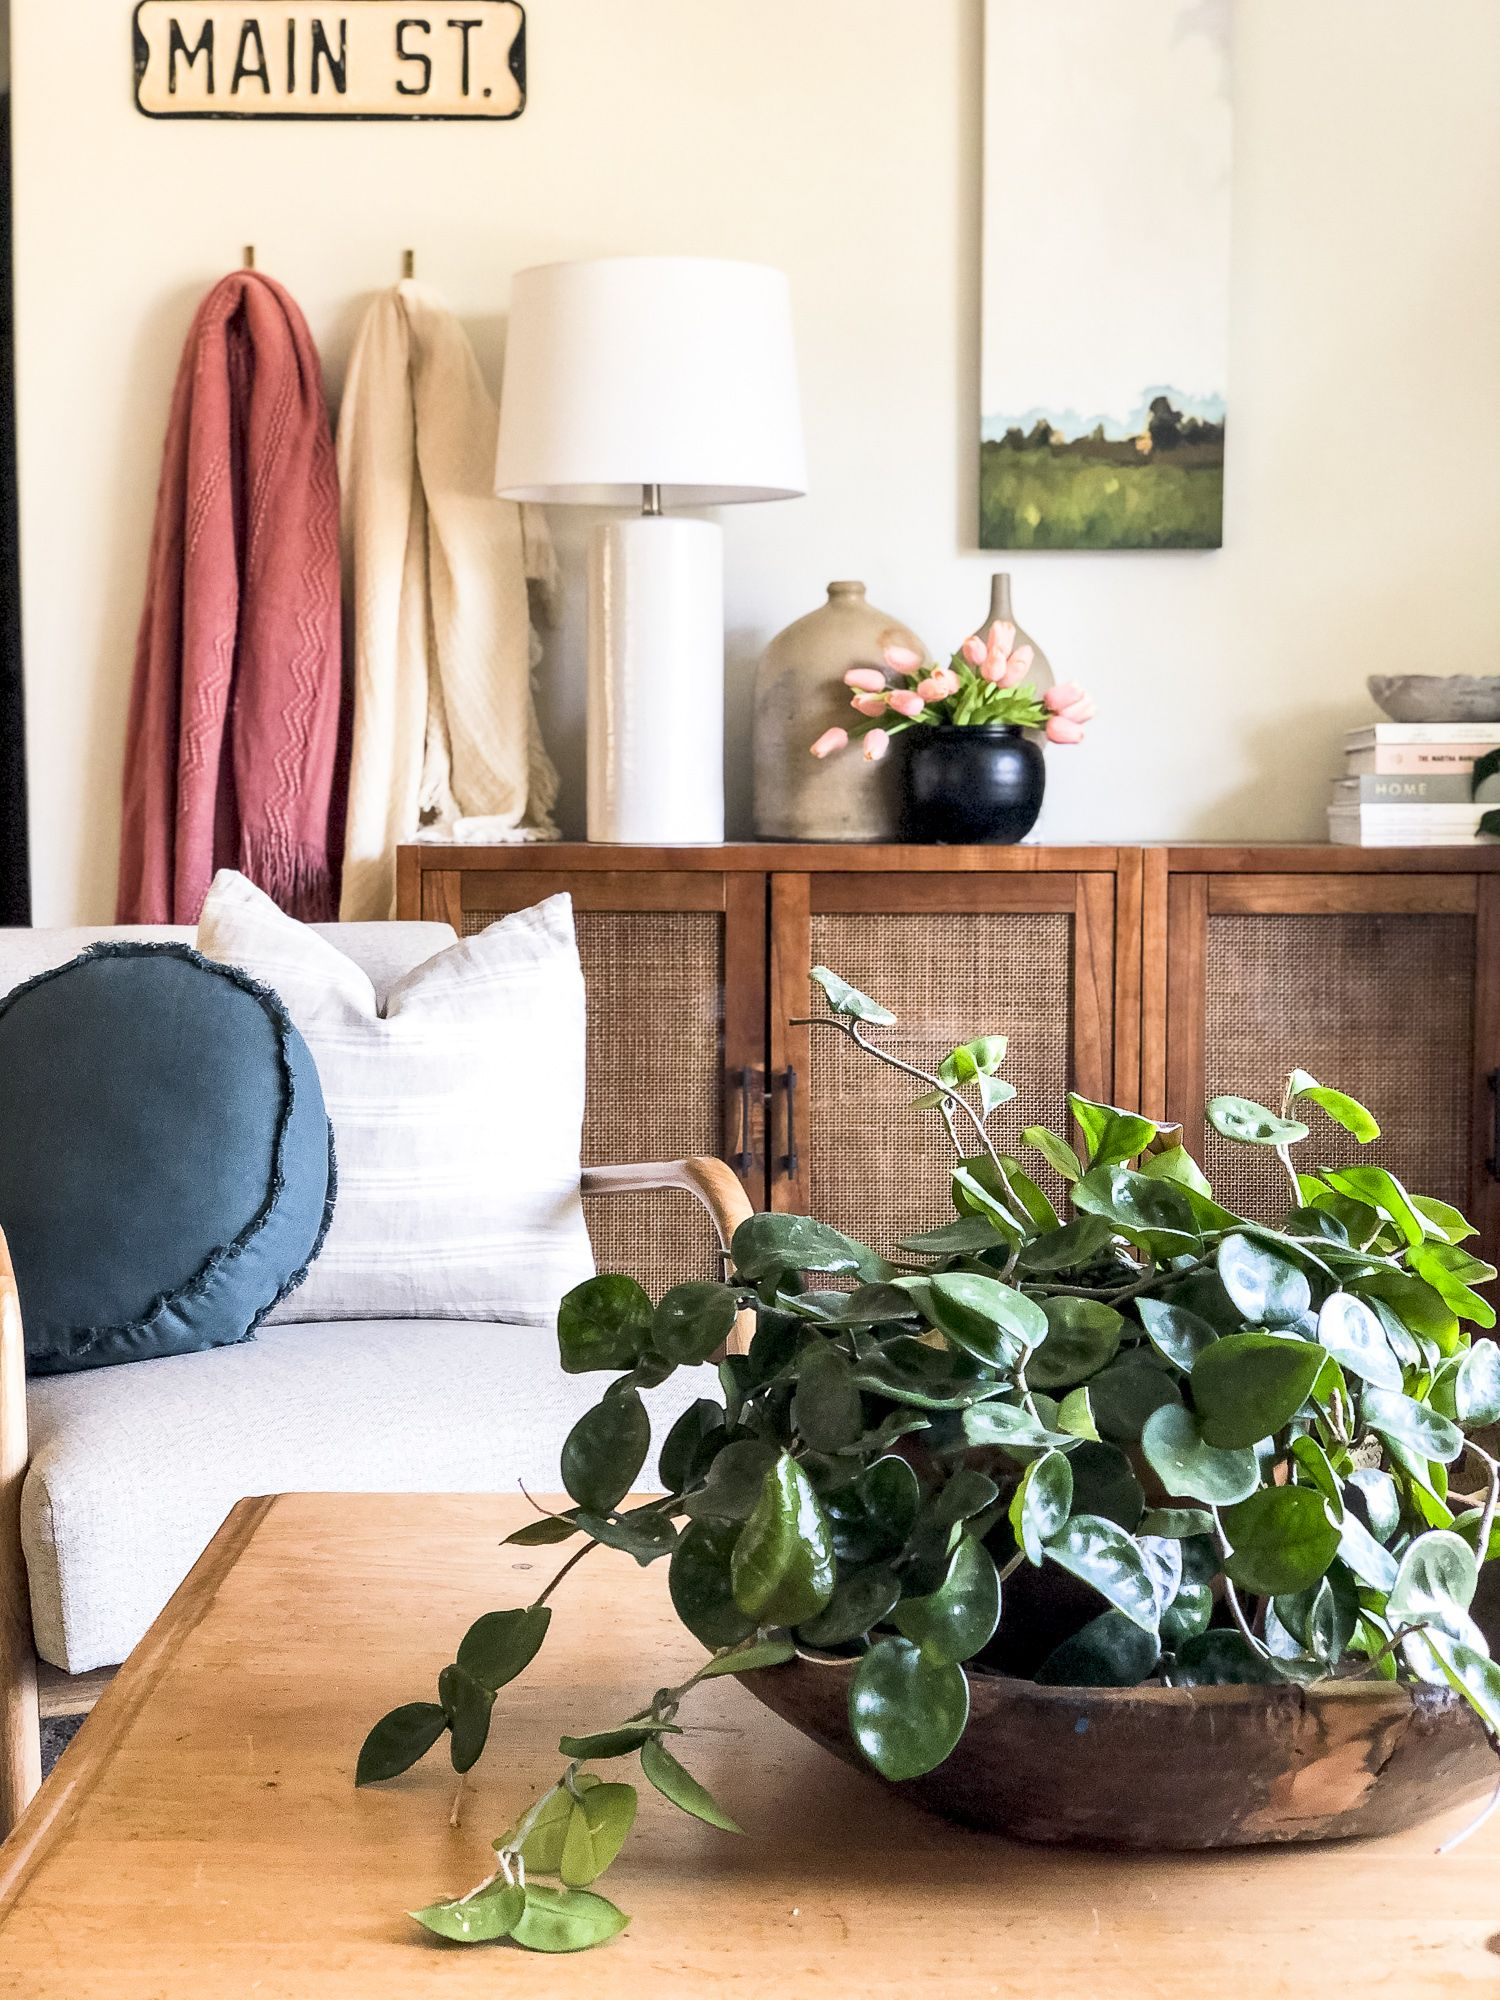 Learn how to get the modern bohemian design style with simple design tricks! Enjoy this summer home tour of my modern boho living room decor. #modernboho #bohemiandesign #modernbohemian #bohodesignstyle #summerdecor #livingroomdecor #livingroomlayout #velvetcouch